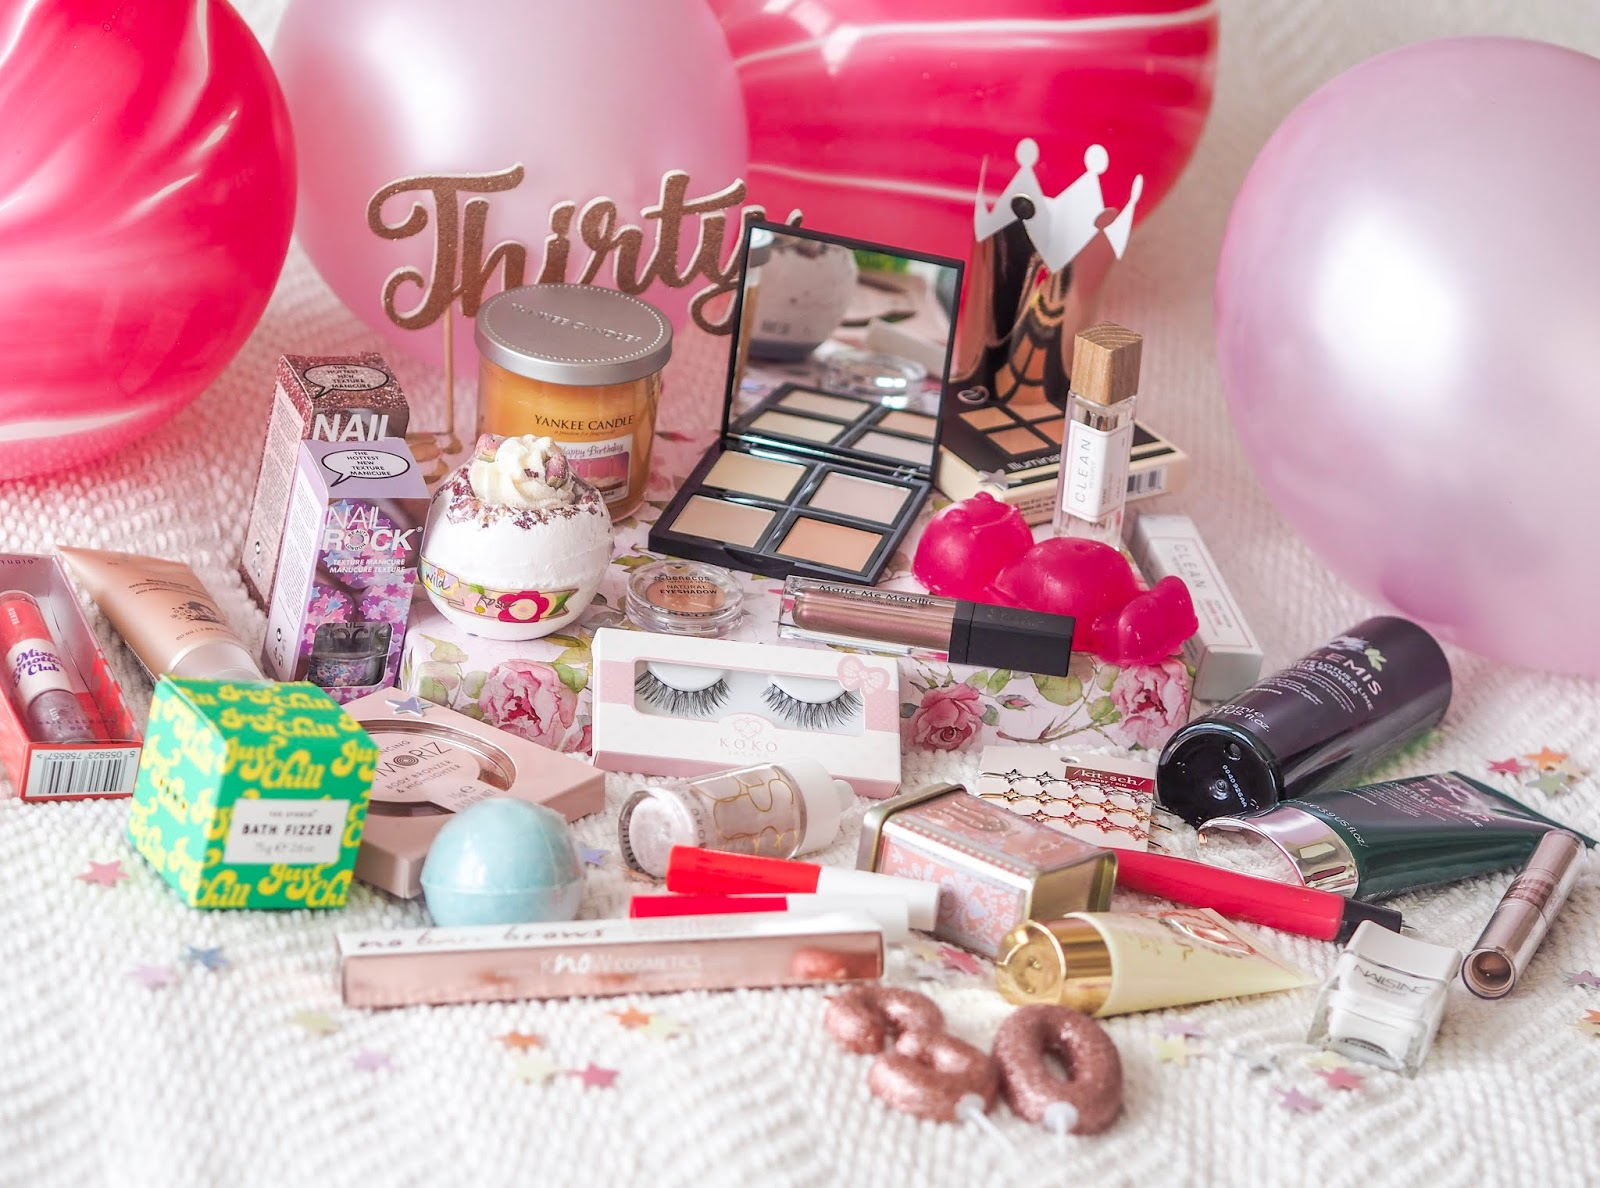 Giveaway: Celebrating 30 Years of Being Alive!, Katie Kirk Loves, UK Blogger, Beauty Blogger, Fashion Blogger, UK Influencer, Blog Giveaway, UK Giveway, Beauty Giveaway, Enter To Win, Competition, Prize, Win It Wednesday, Freebie Friday